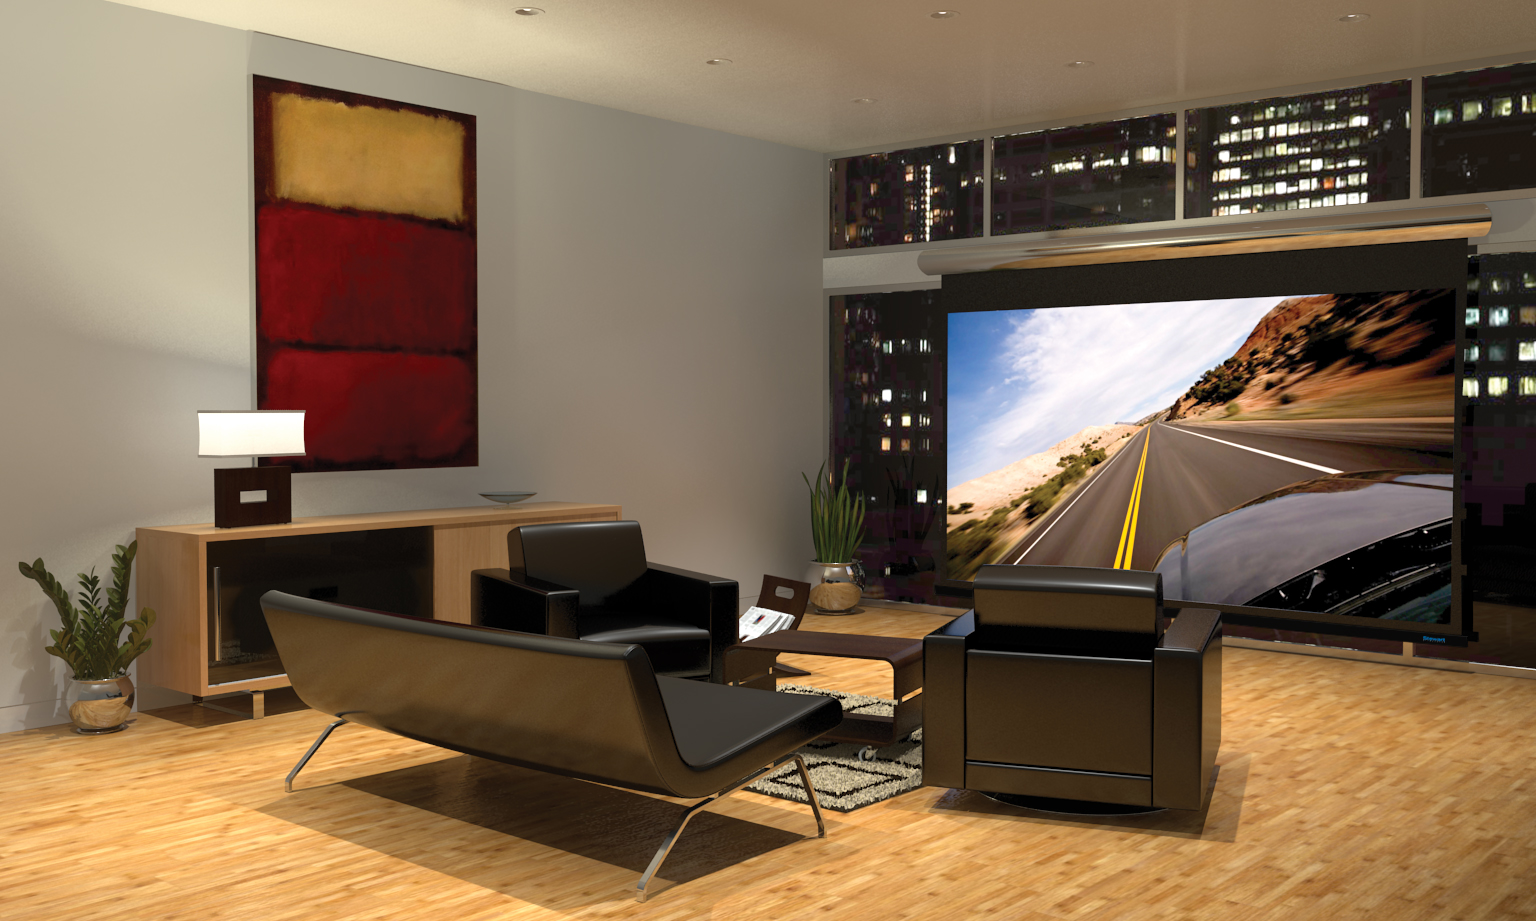 Home theater design and installation homesfeed - Small living room ideas with tv ...